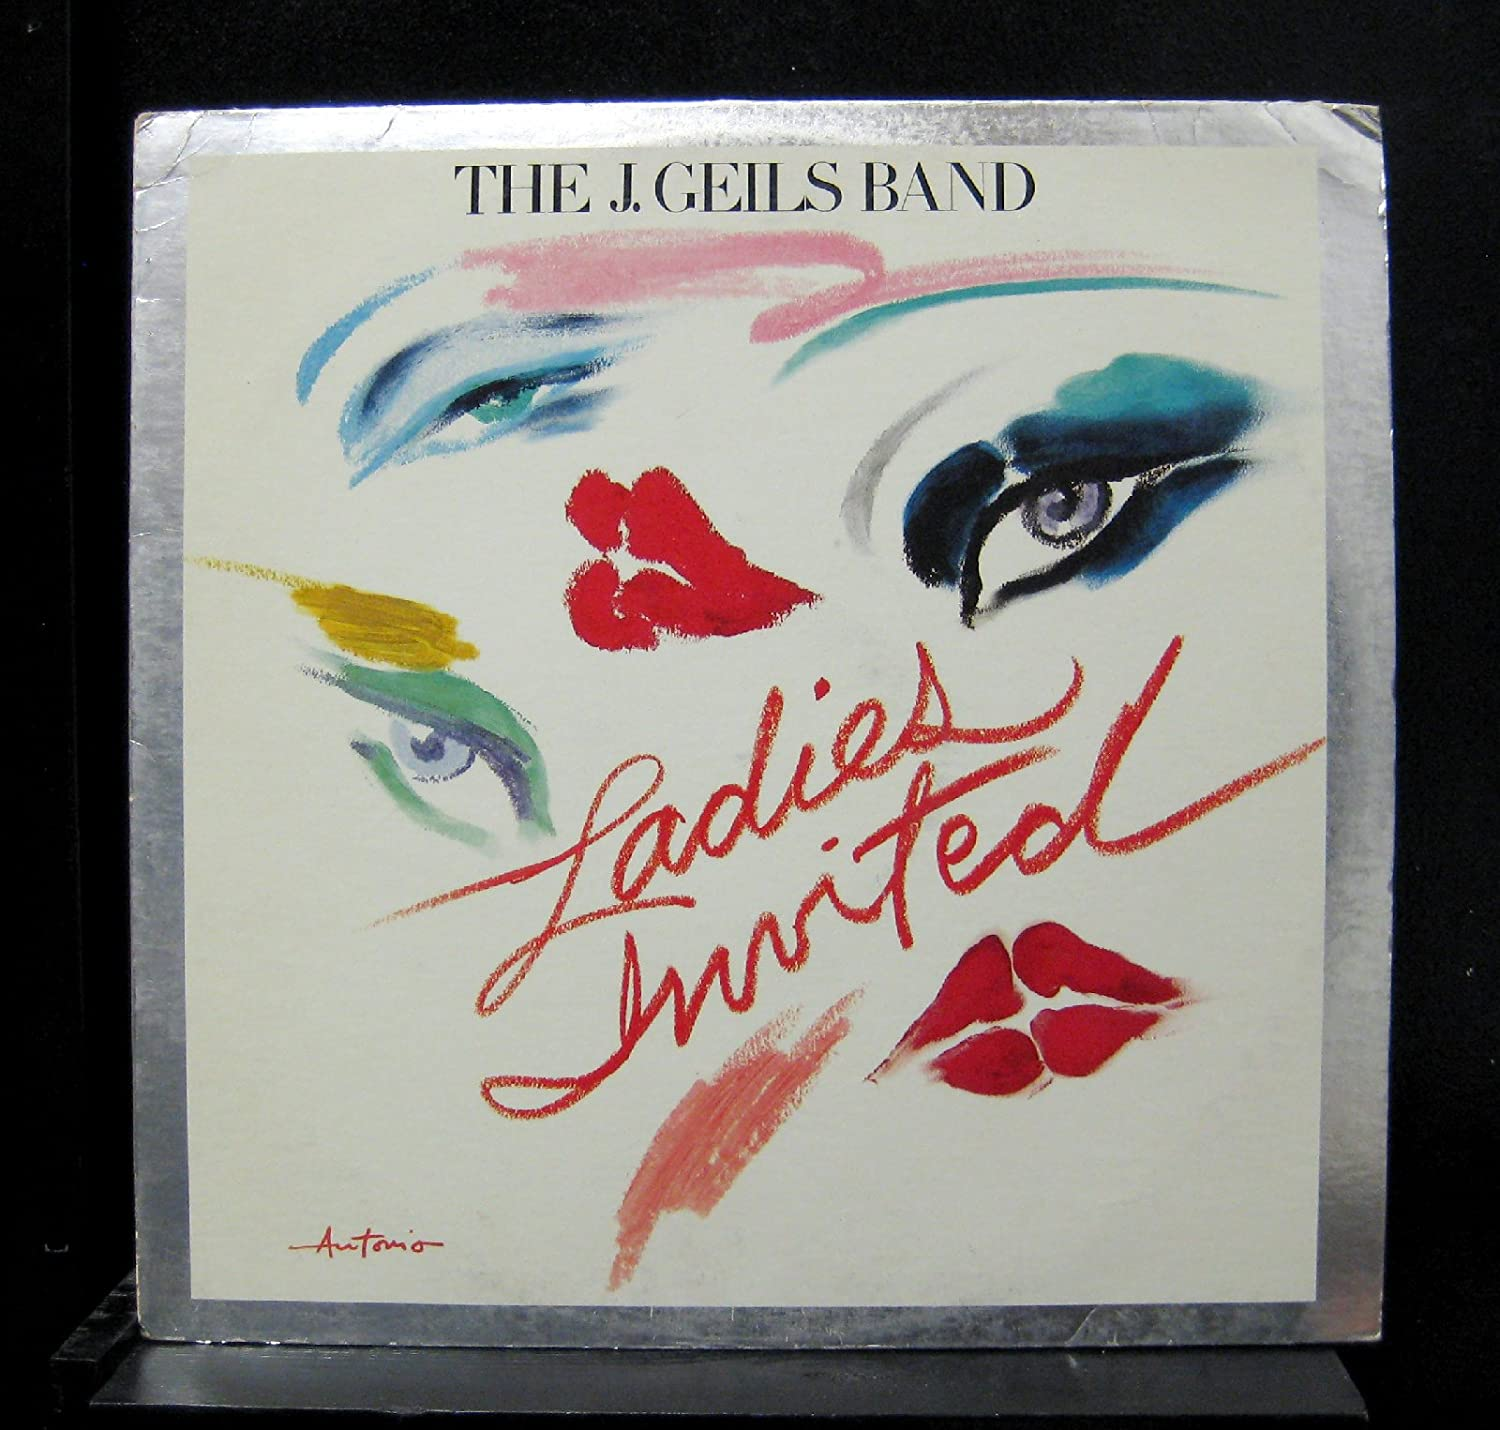 Ladies Invited - The J. Geils Band: Amazon.de: Musik